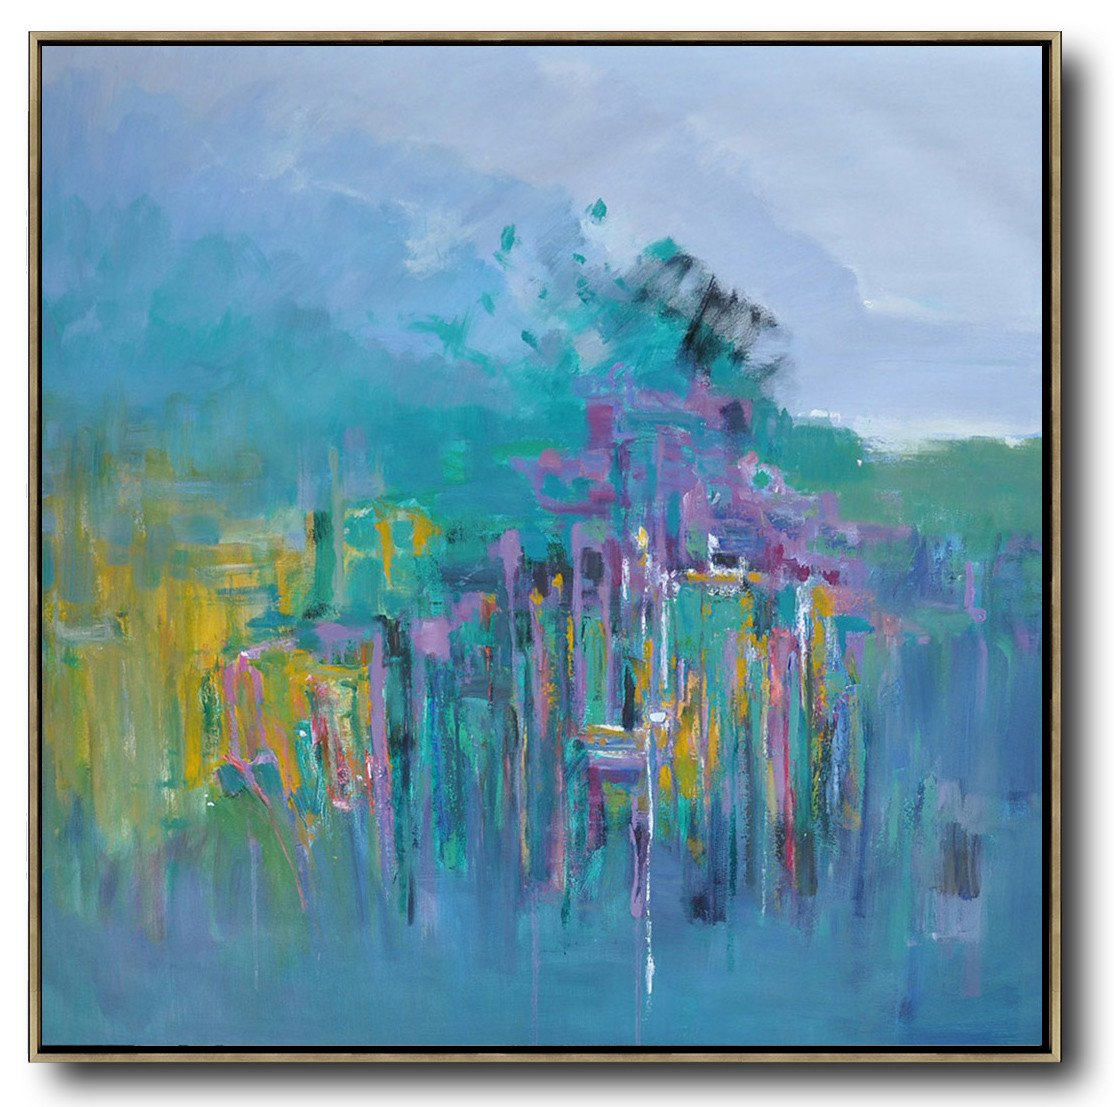 Extra Large Abstract Painting On Canvas,Oversized Abstract Landscape Oil Painting,Xl Large Canvas Art,Blue,Green,Yellow,Purple.etc